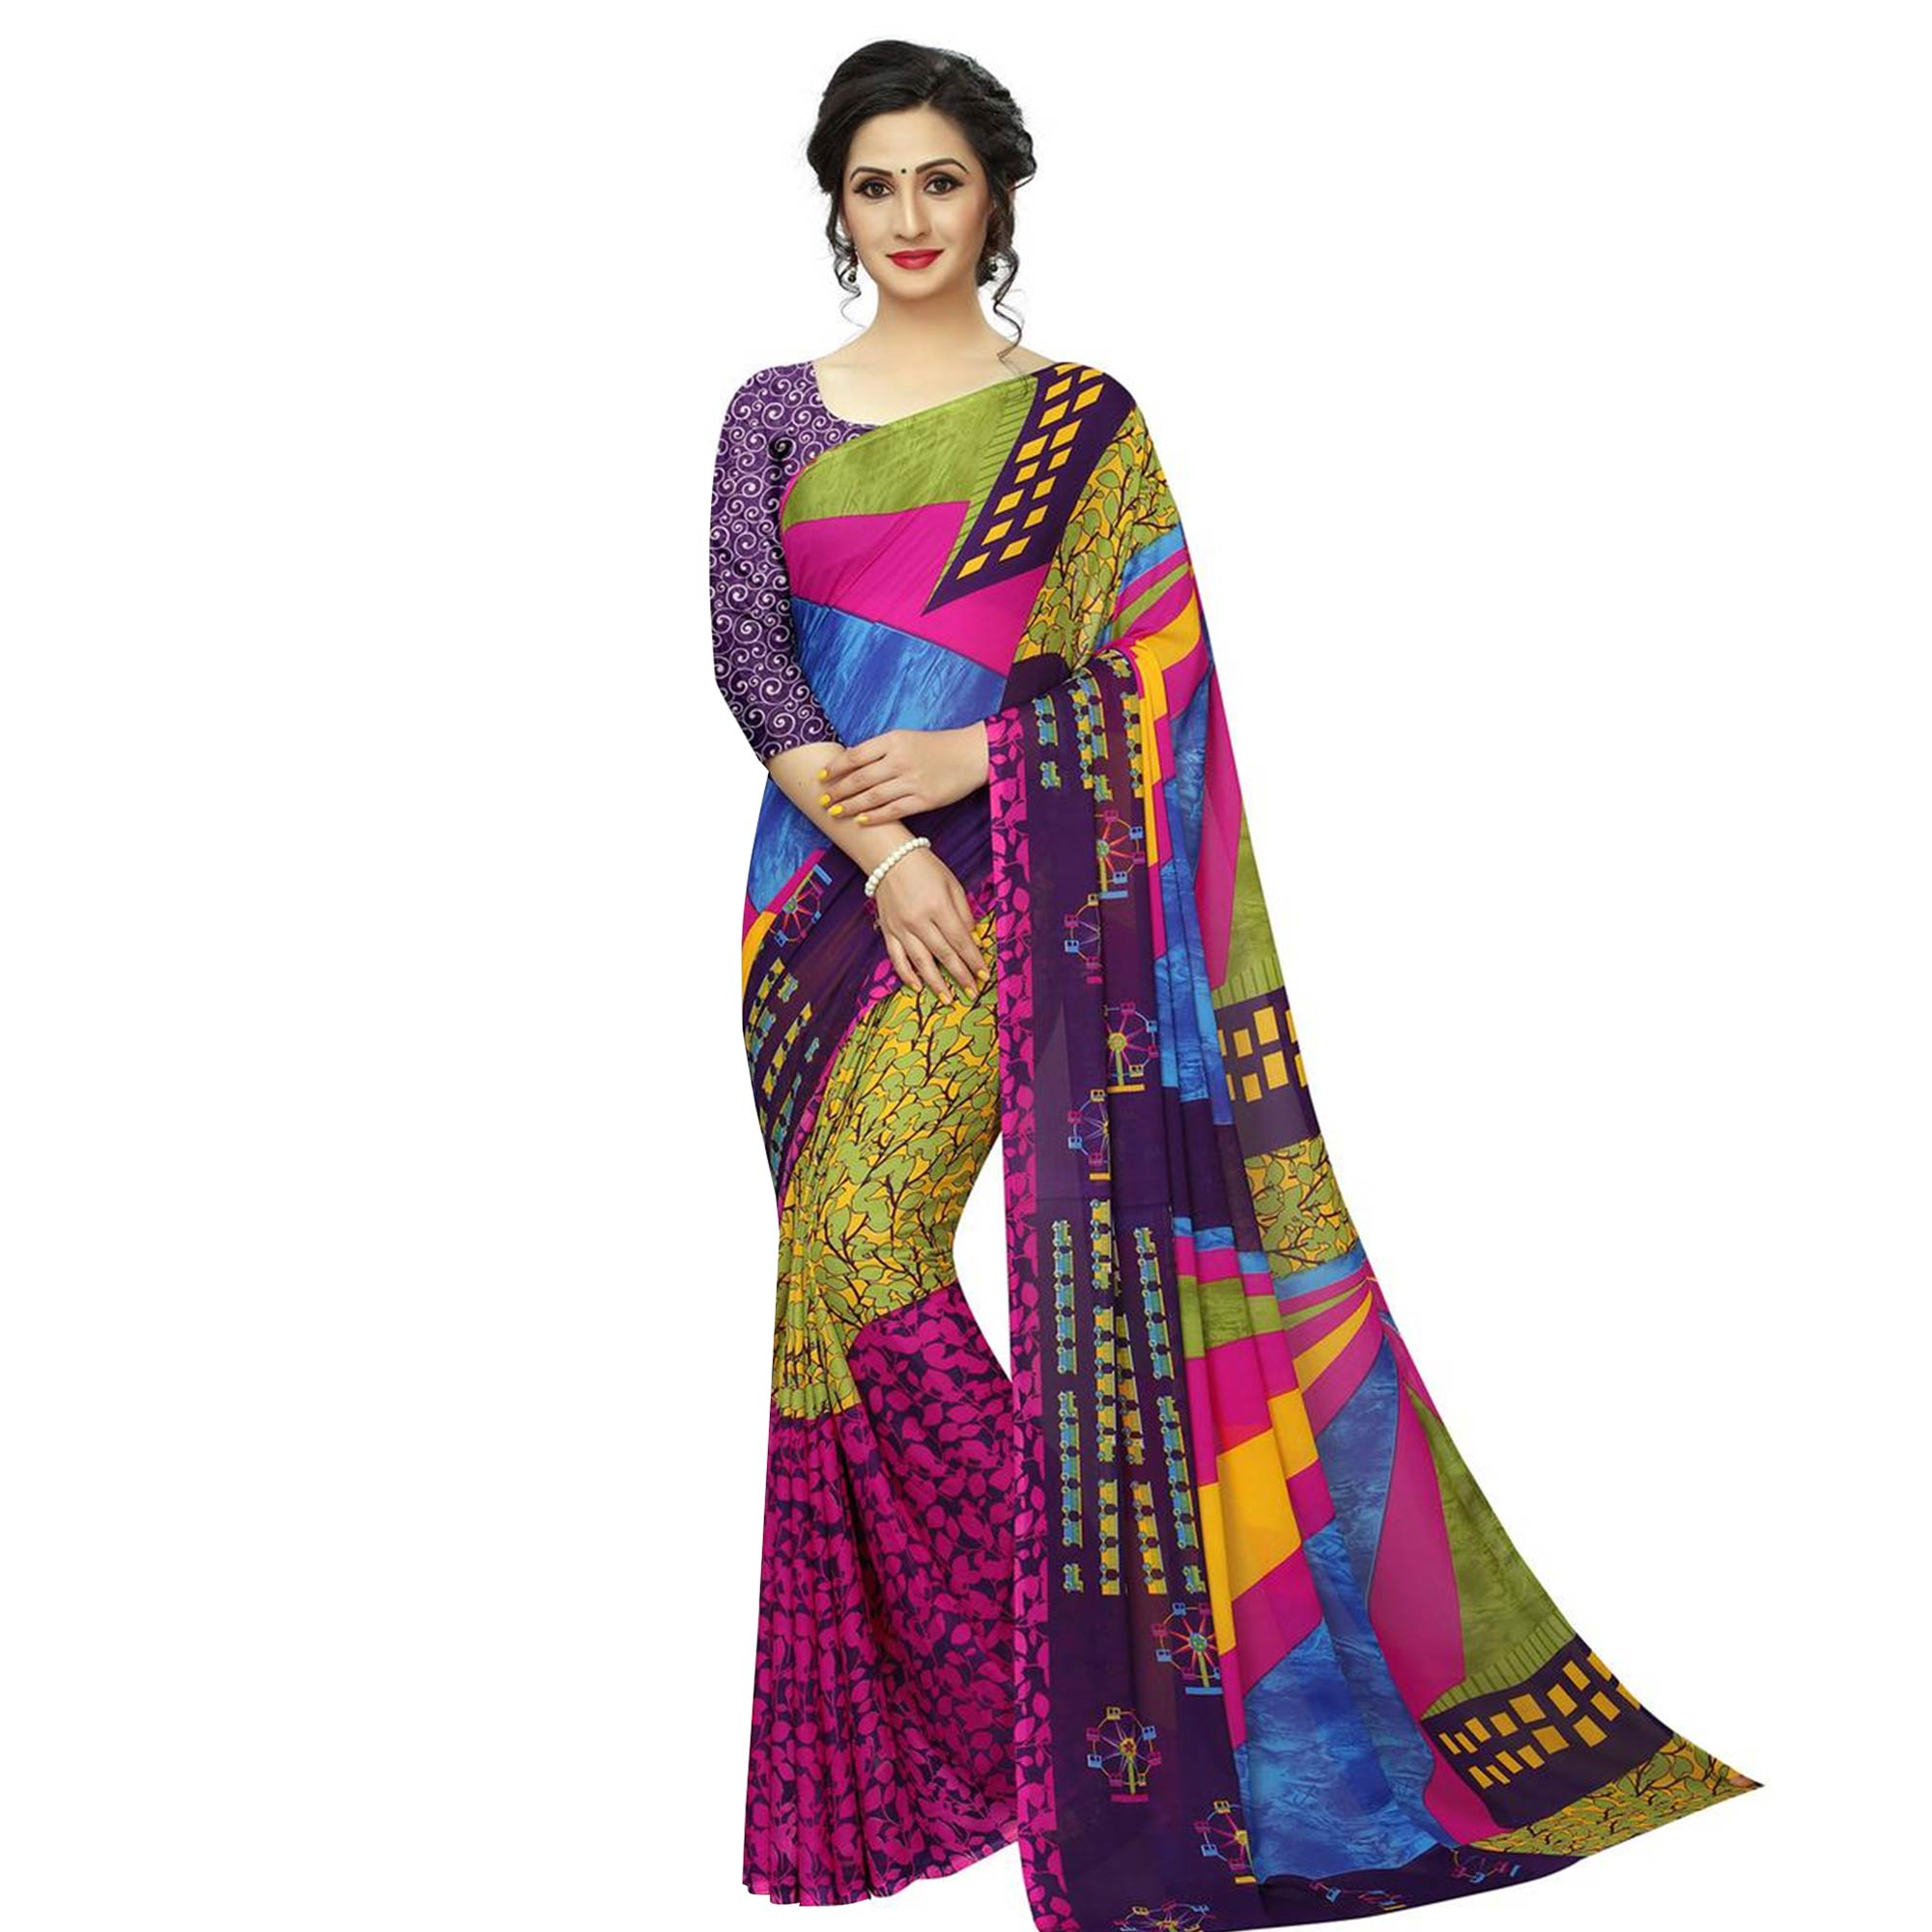 Radiant Casual Printed Georgette Saree - Pack of 2